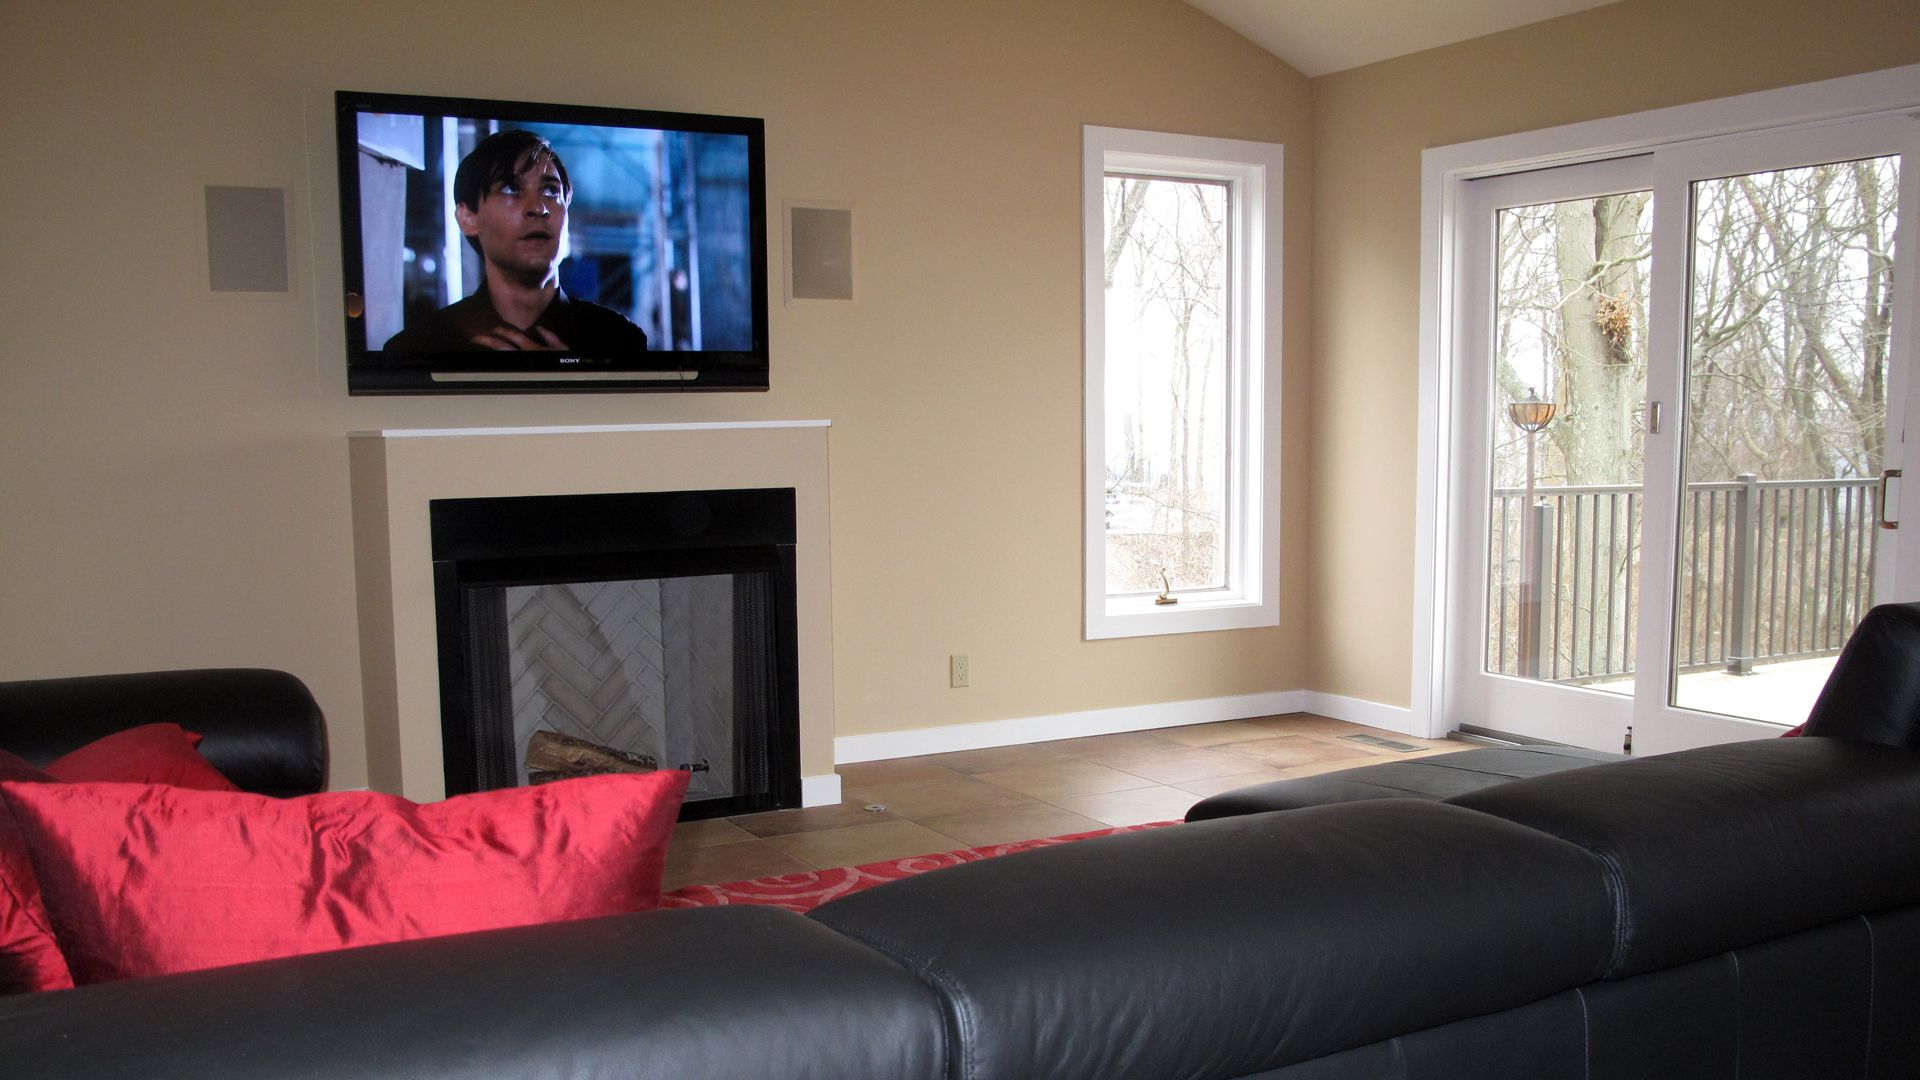 Tv Over A Fireplace With In Wall Speakers Audio Video